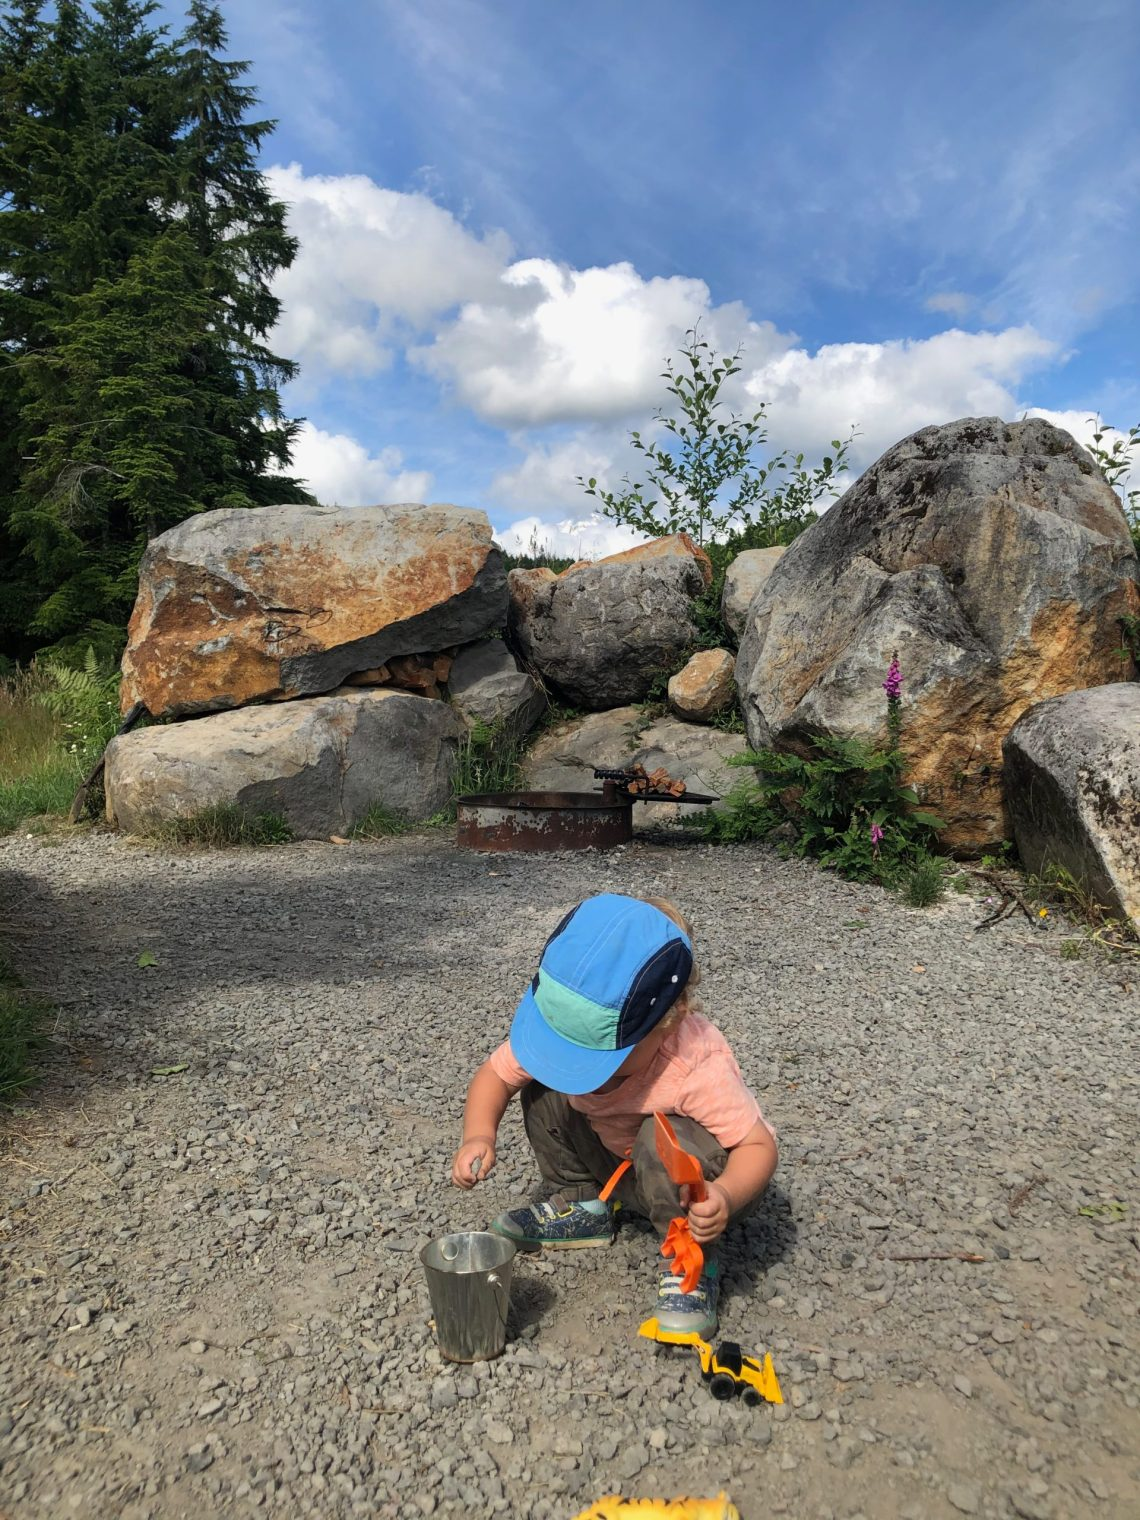 Campsite playing for a toddler is all about the rocks and dirt